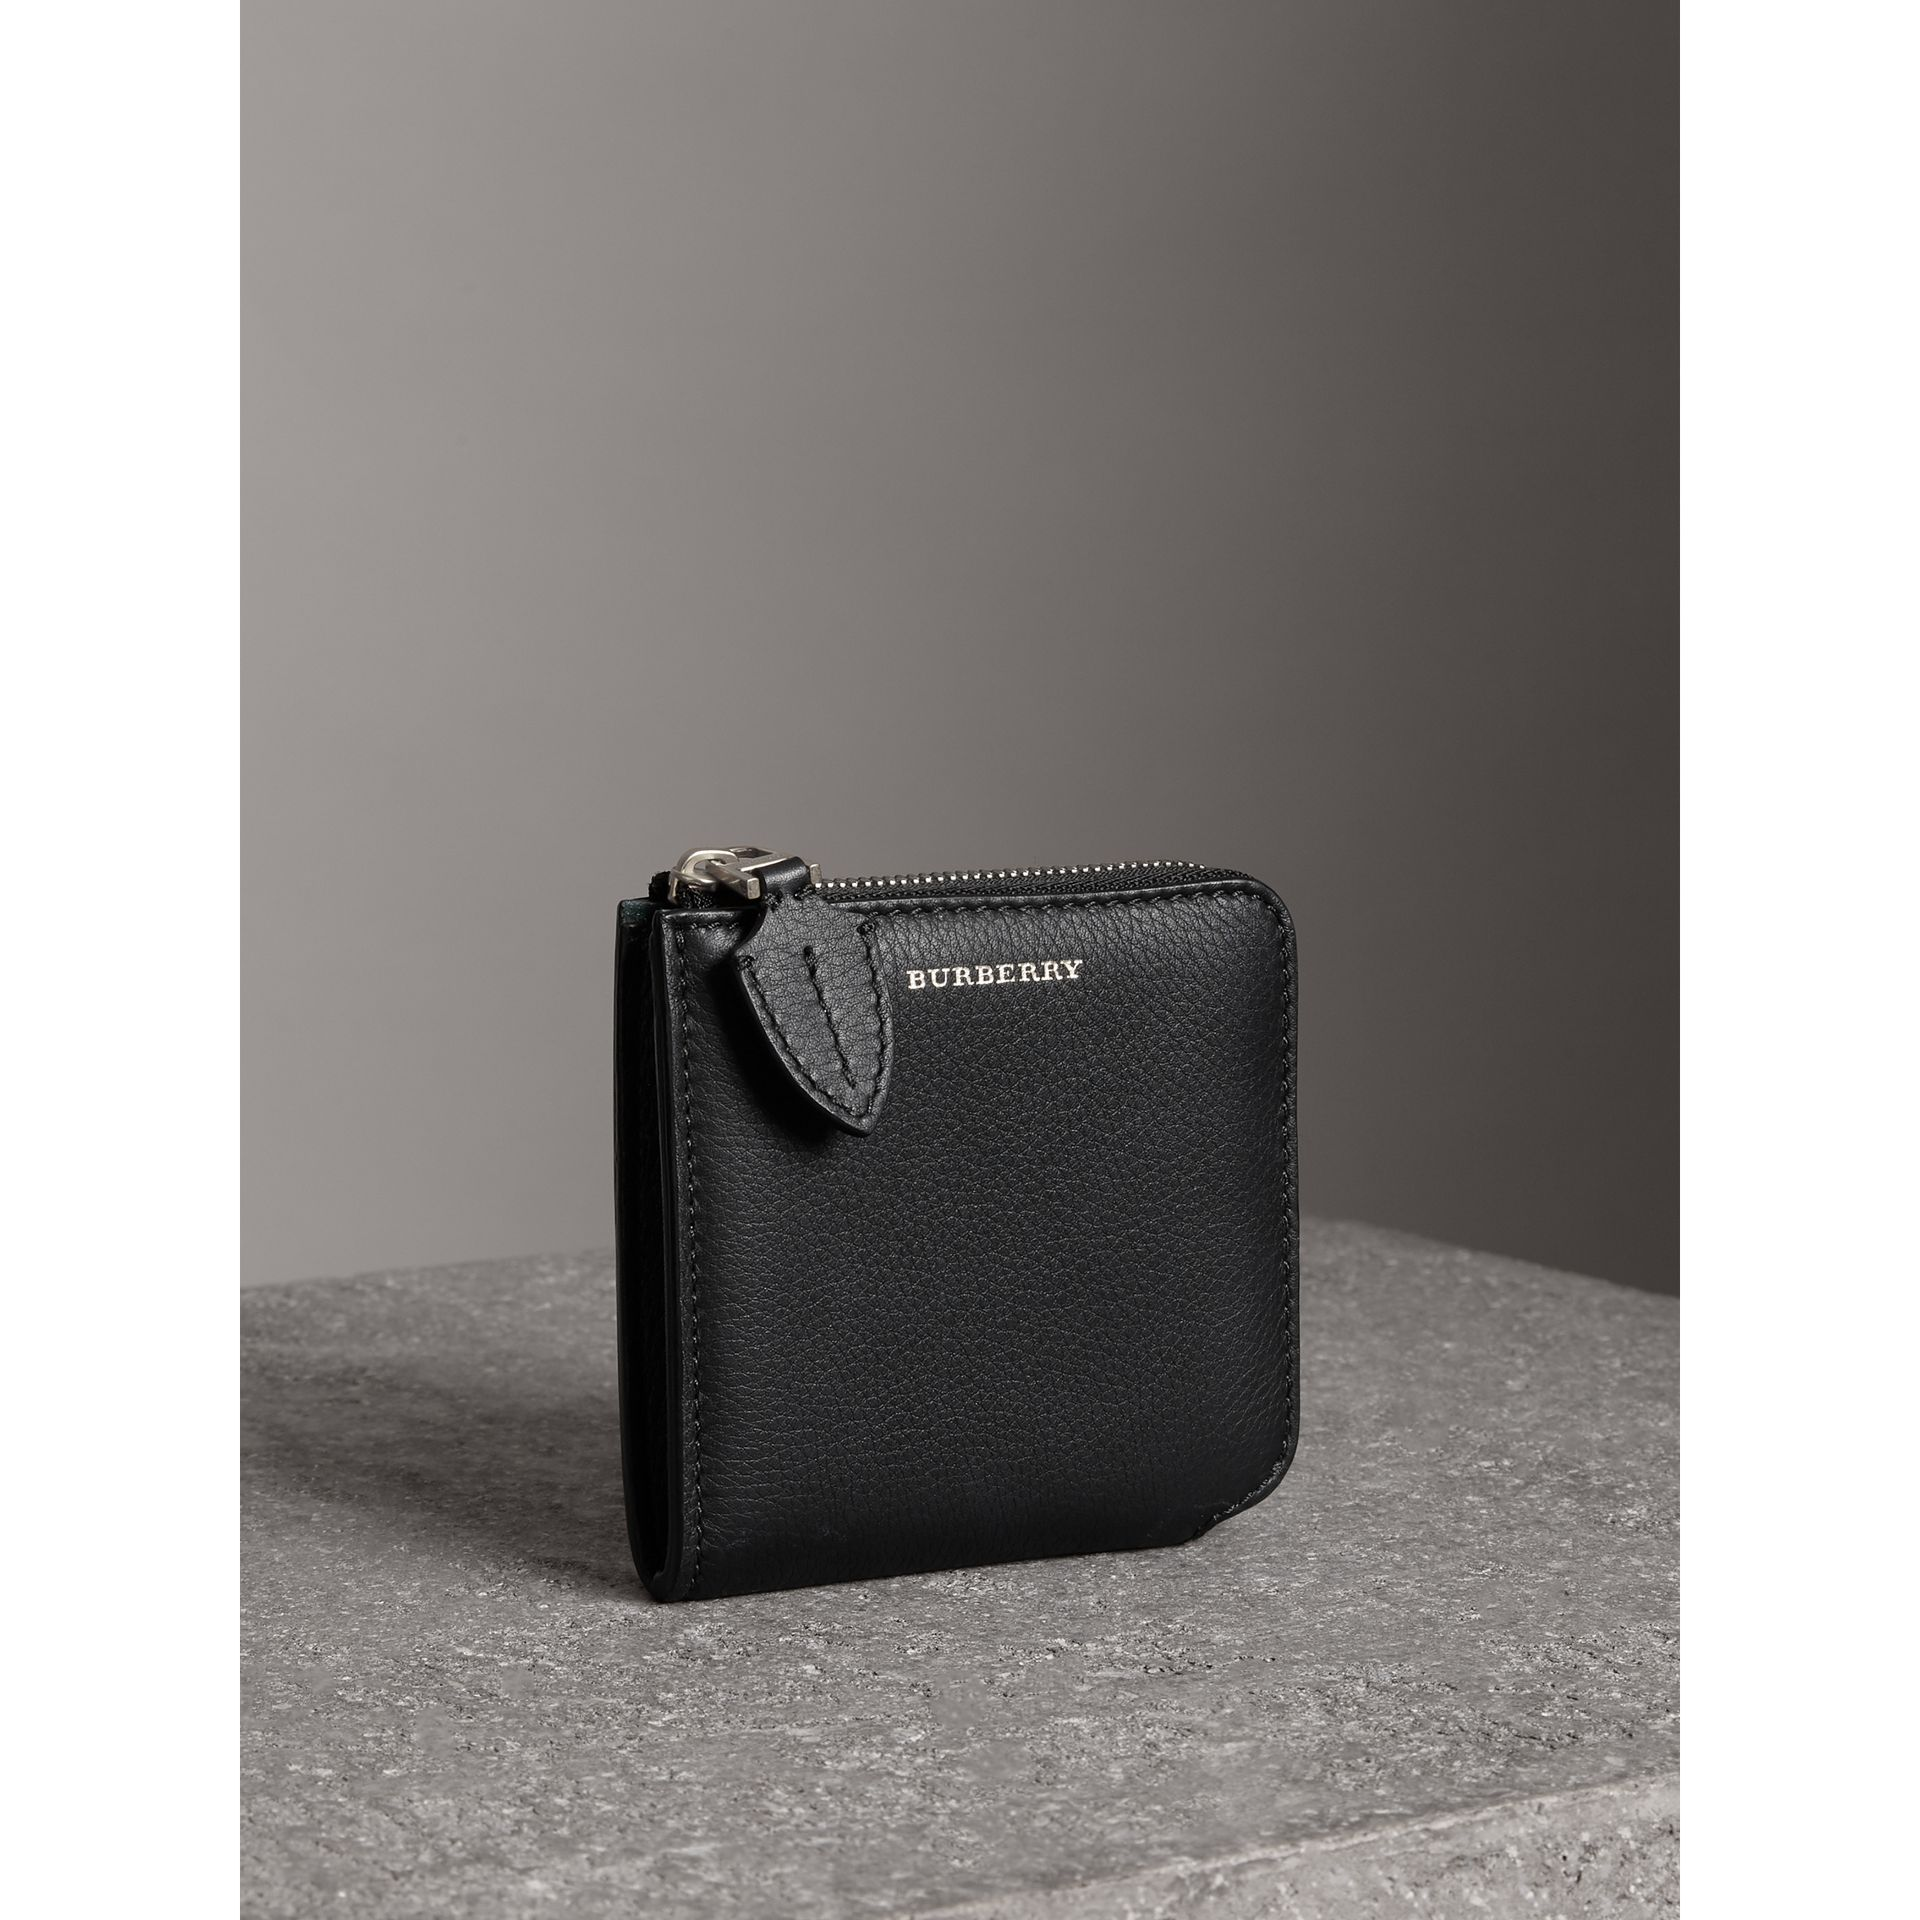 Grainy Leather Square Ziparound Wallet in Black - Women | Burberry - gallery image 4